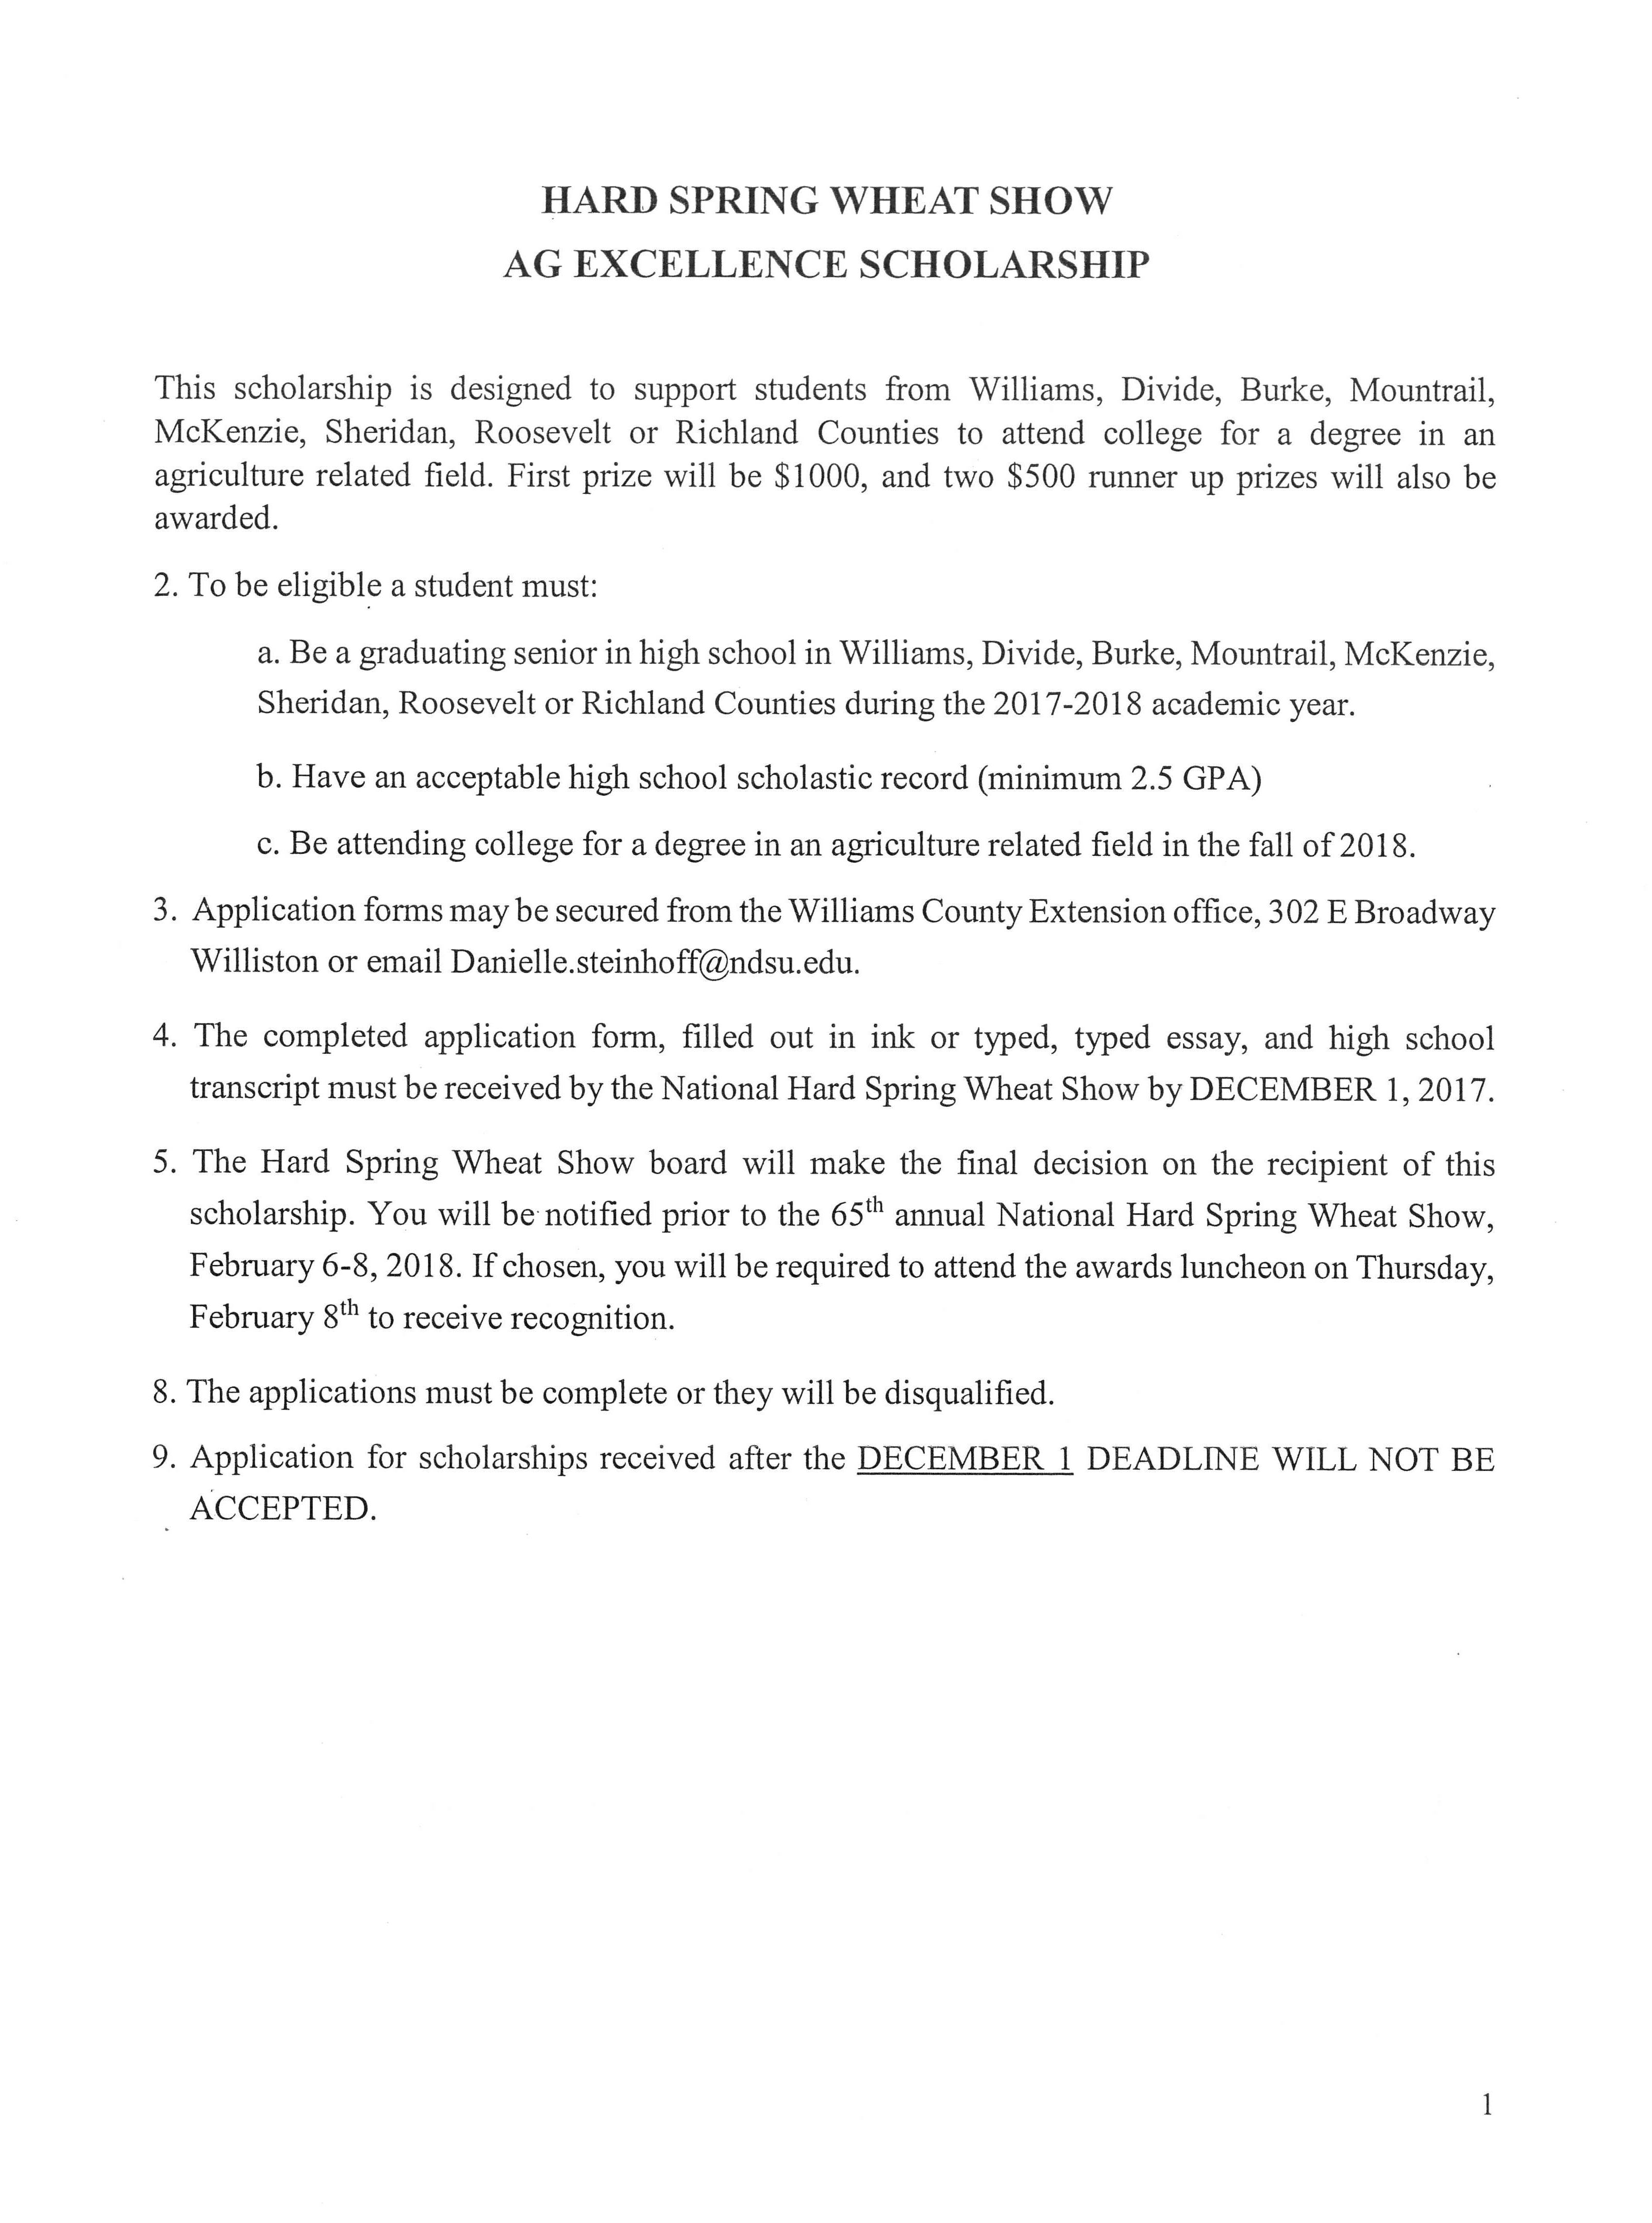 005 Essay Example Scholarships Page 1 Wonderful 2017 No College Canada Full